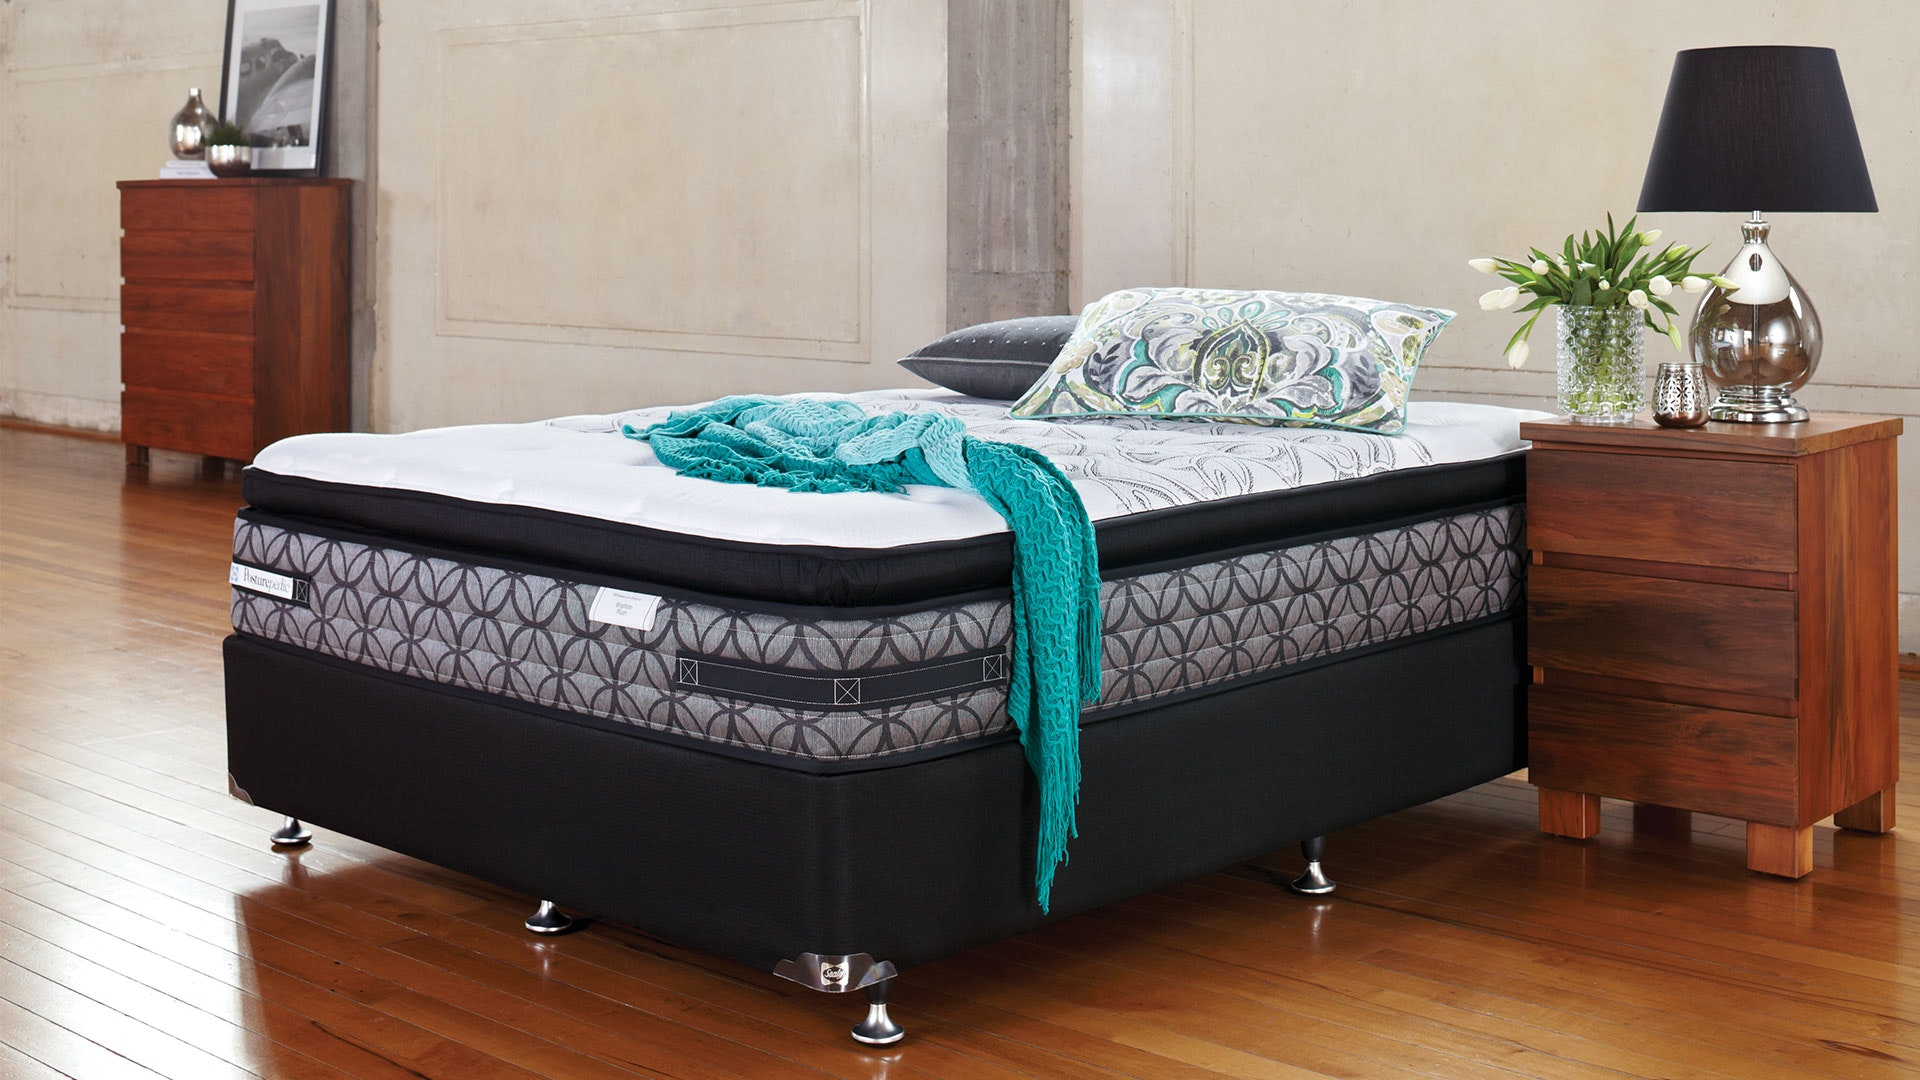 Brighton Plush King Bed by Sealy Posturepedic